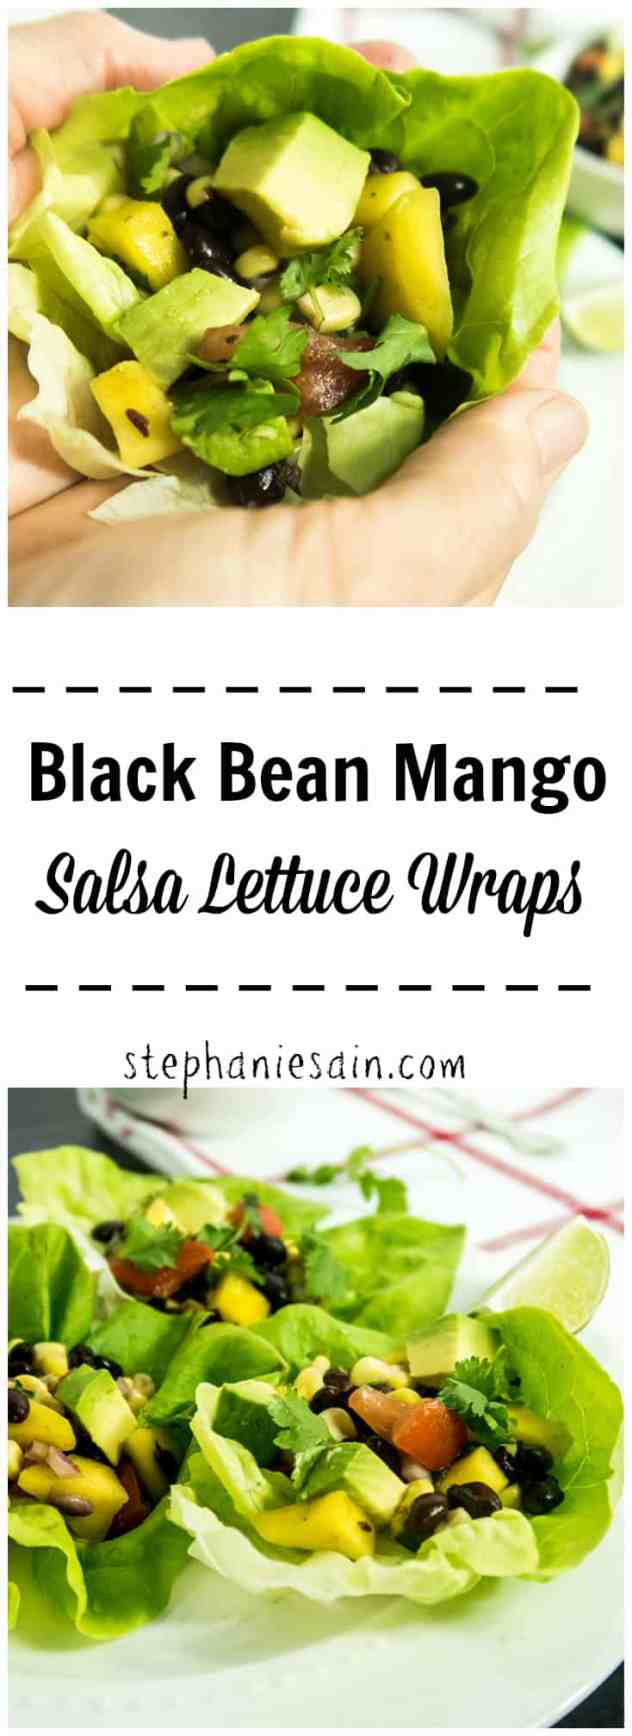 Black Bean Mango Salsa Lettuce Wraps are the perfect go to lunch or dinner for the warmer months. No stove required, fun, and family friendly. Vegan & Gluten Free.